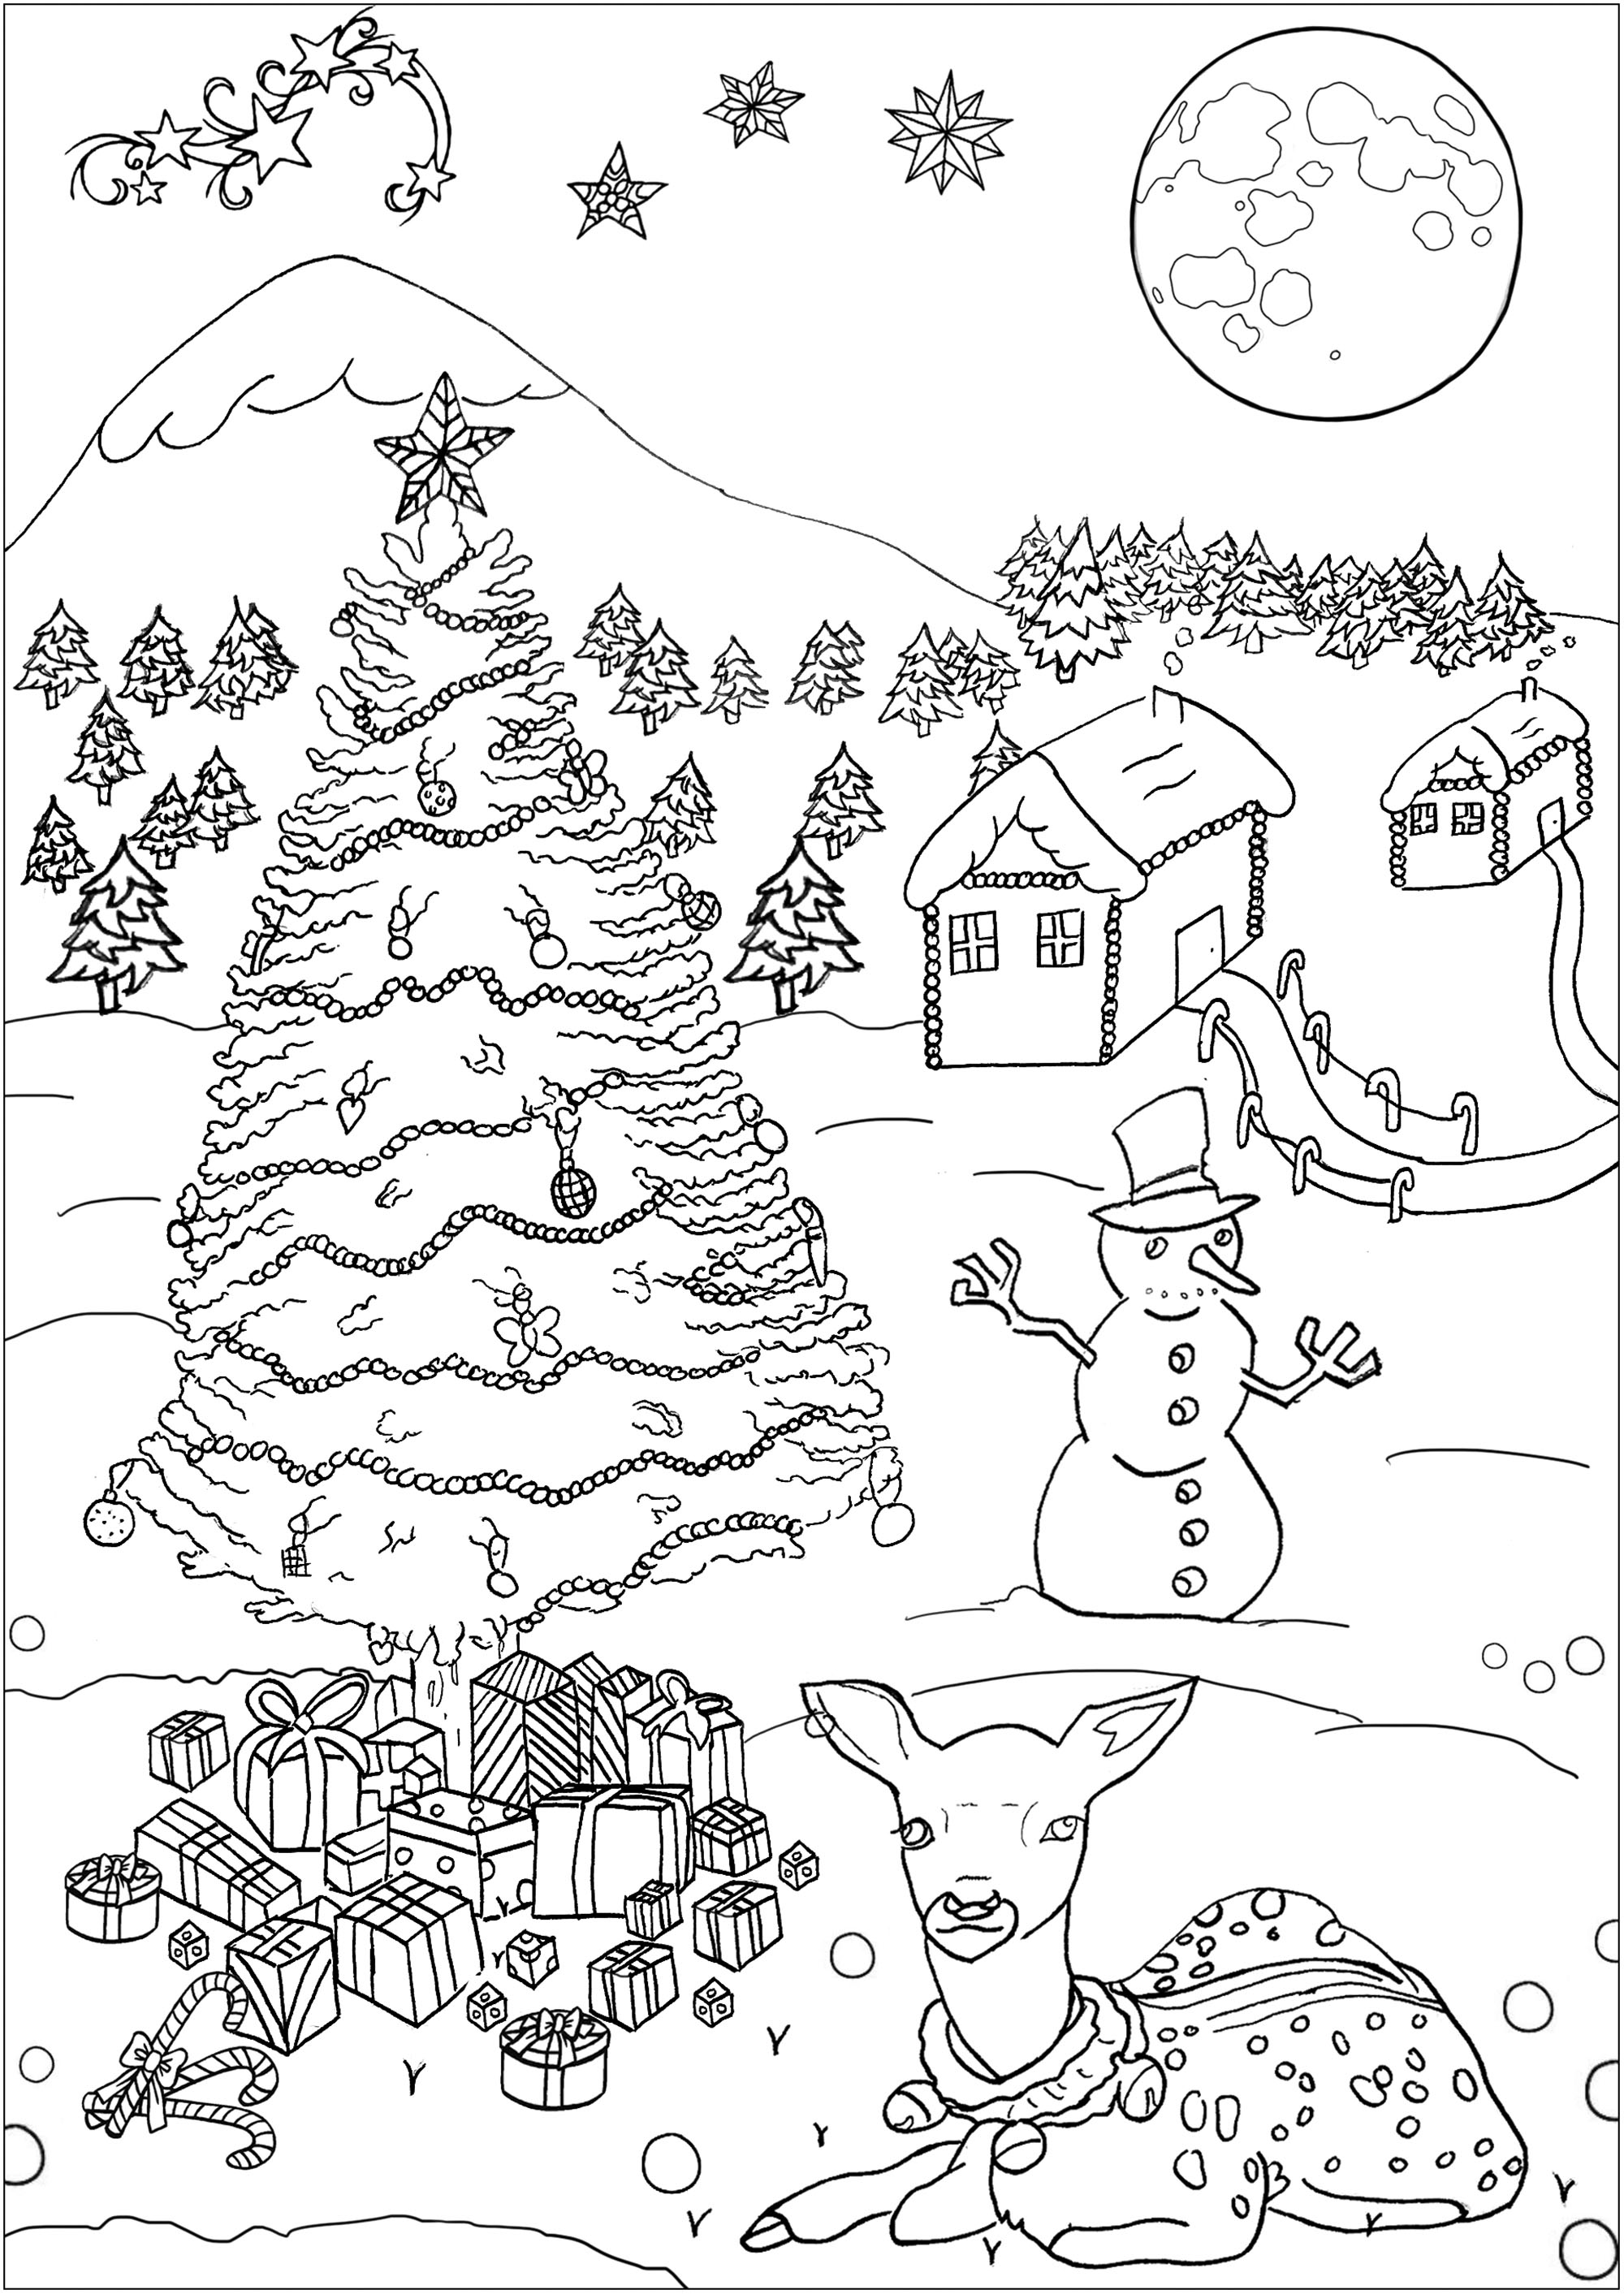 Christmas Landscape Christmas Adult Coloring Pages